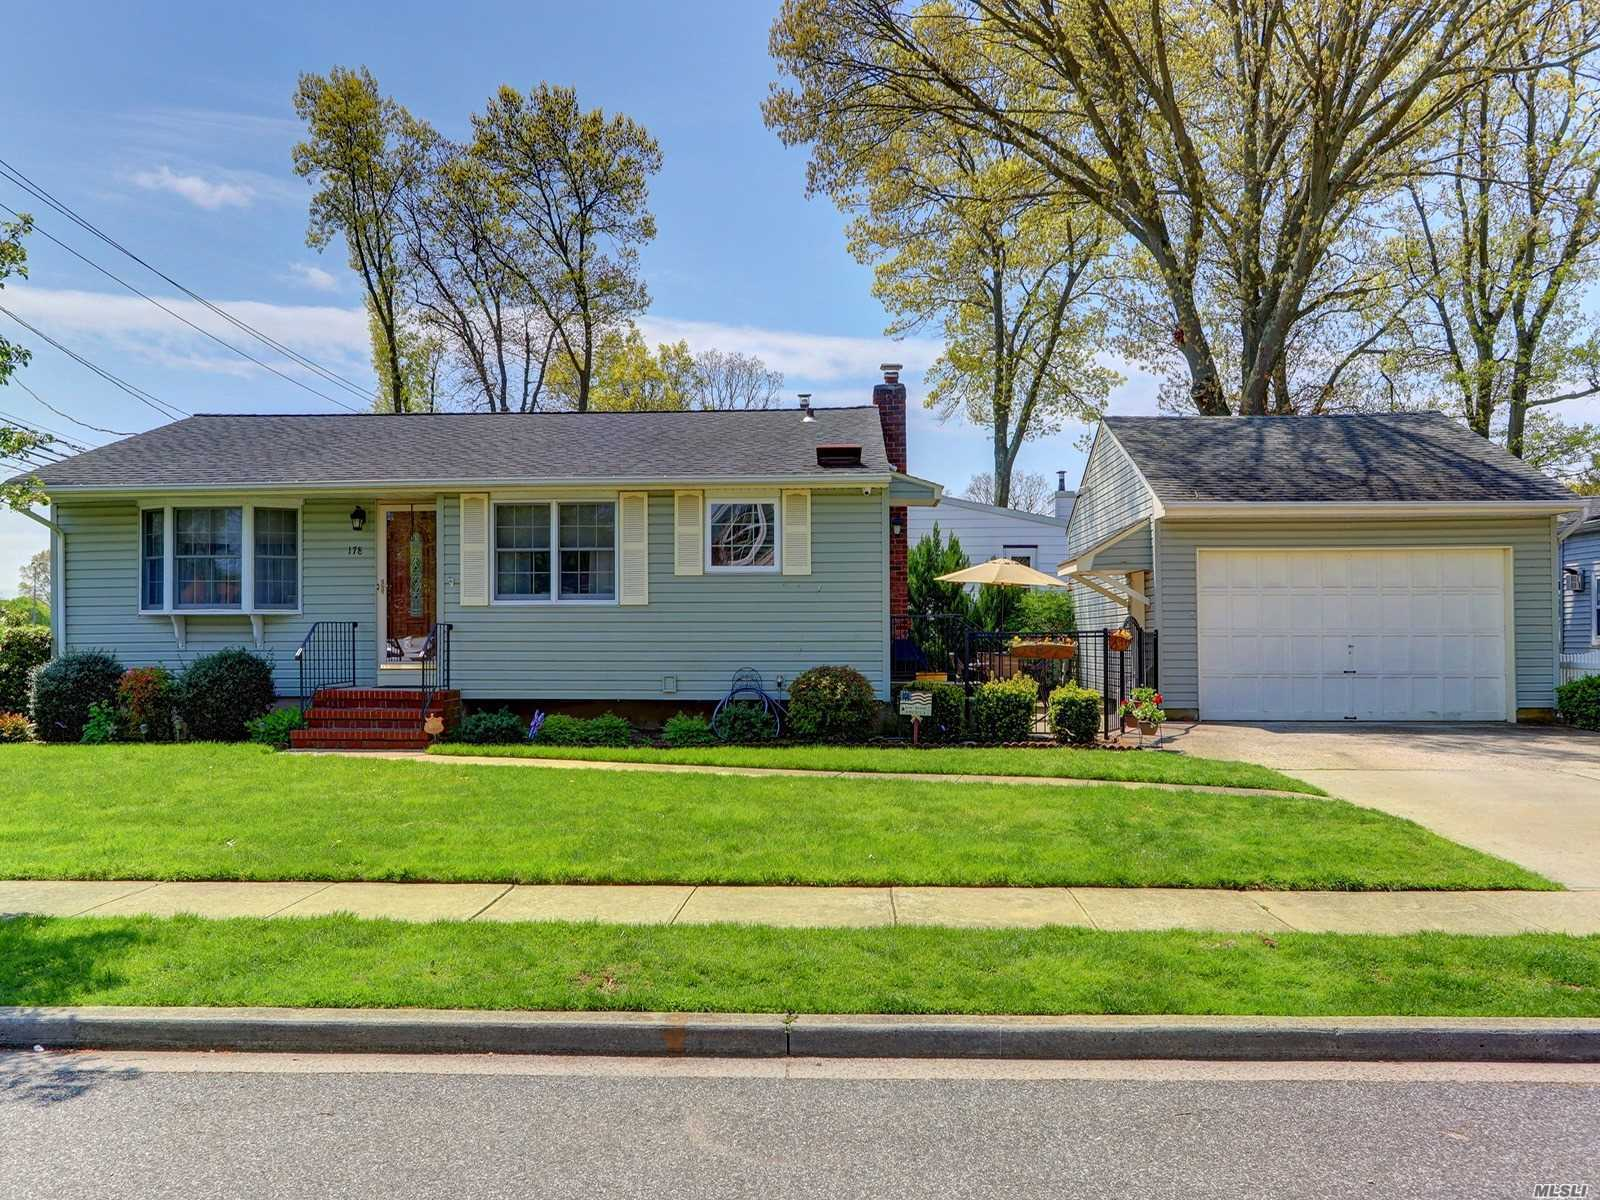 Nicely updated ranch in the Inc. Village. Hardwood floors throughout, newer baths, updated kitchen, Full basement with outside entrance. Detached 2.5 car oversized garage. Newer windows, siding, and roof. Central Air and in-ground sprinklers.  Fantastic opportunity. Prof photos coming.